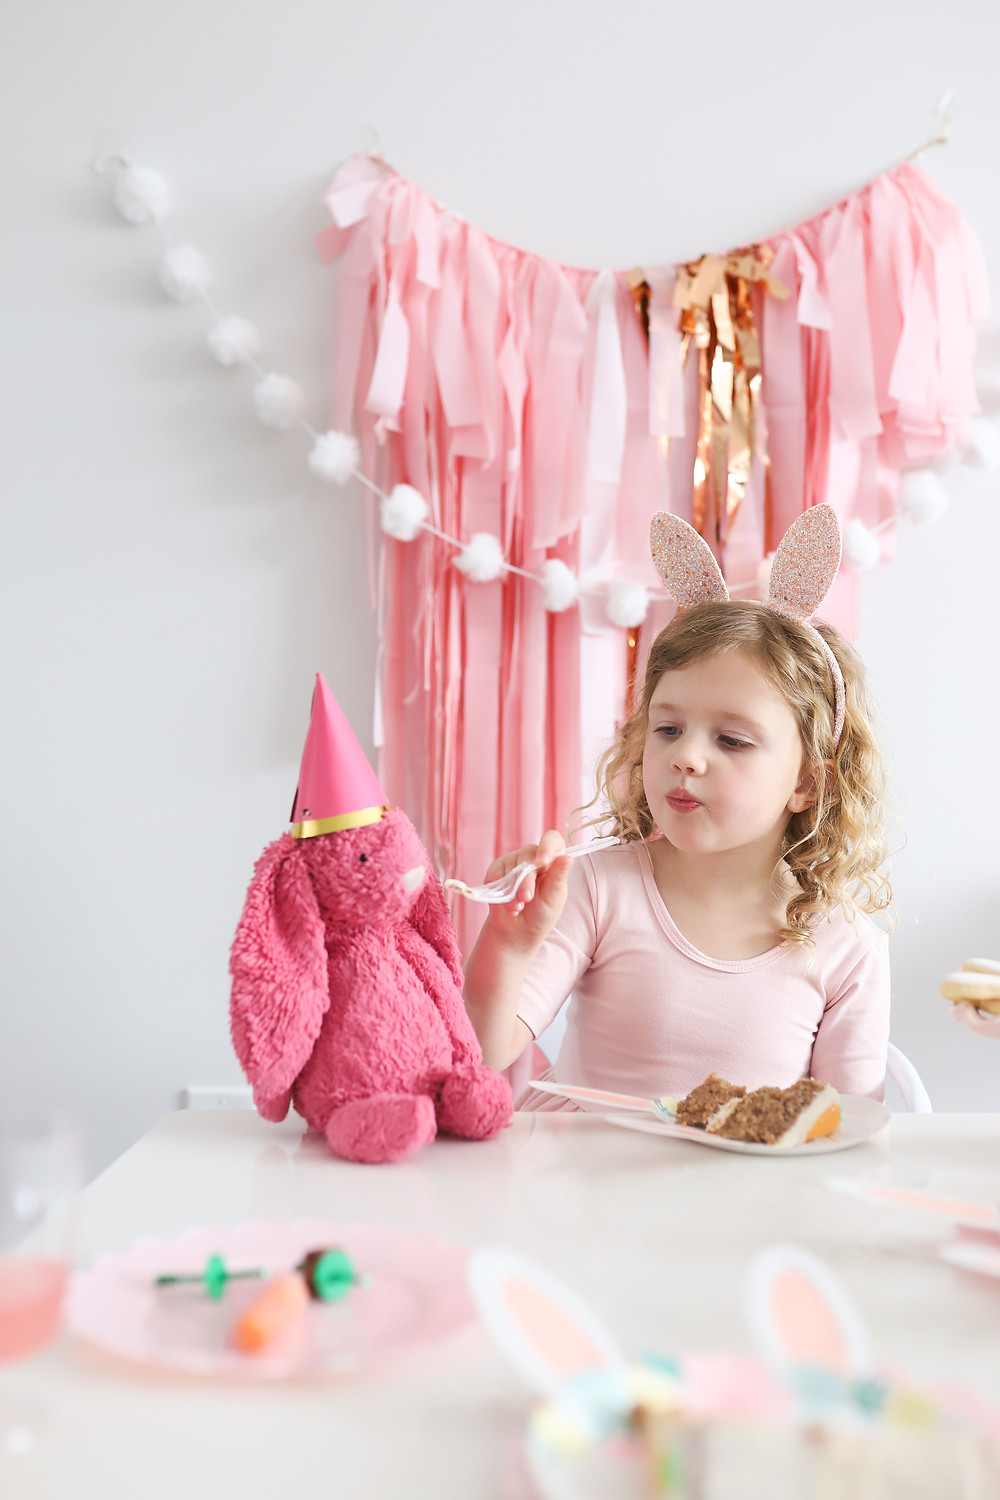 A little girl sitting with a pink stuffed bunny wearing a party hat for a birthday celebration.